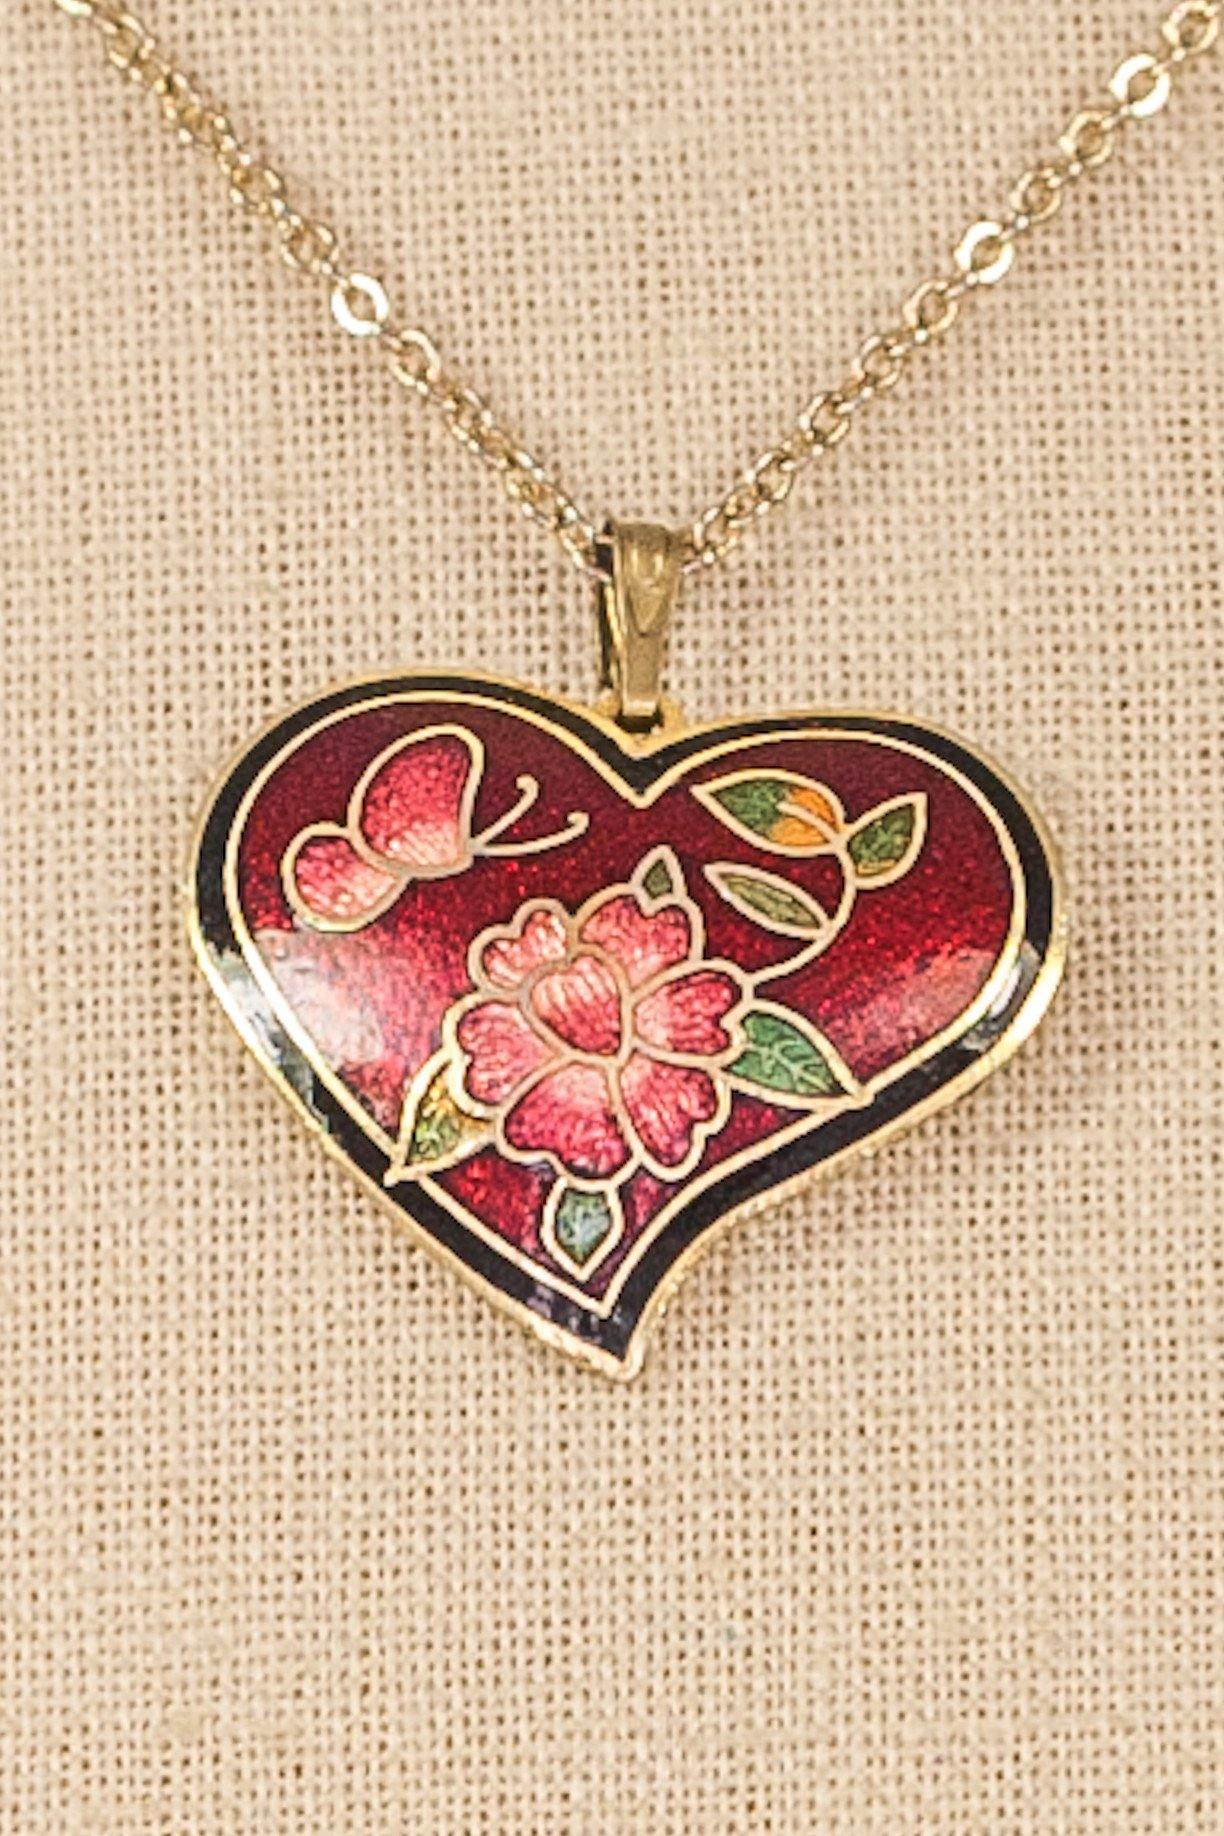 60's__Vintage__Floral Heart Pendant Necklace